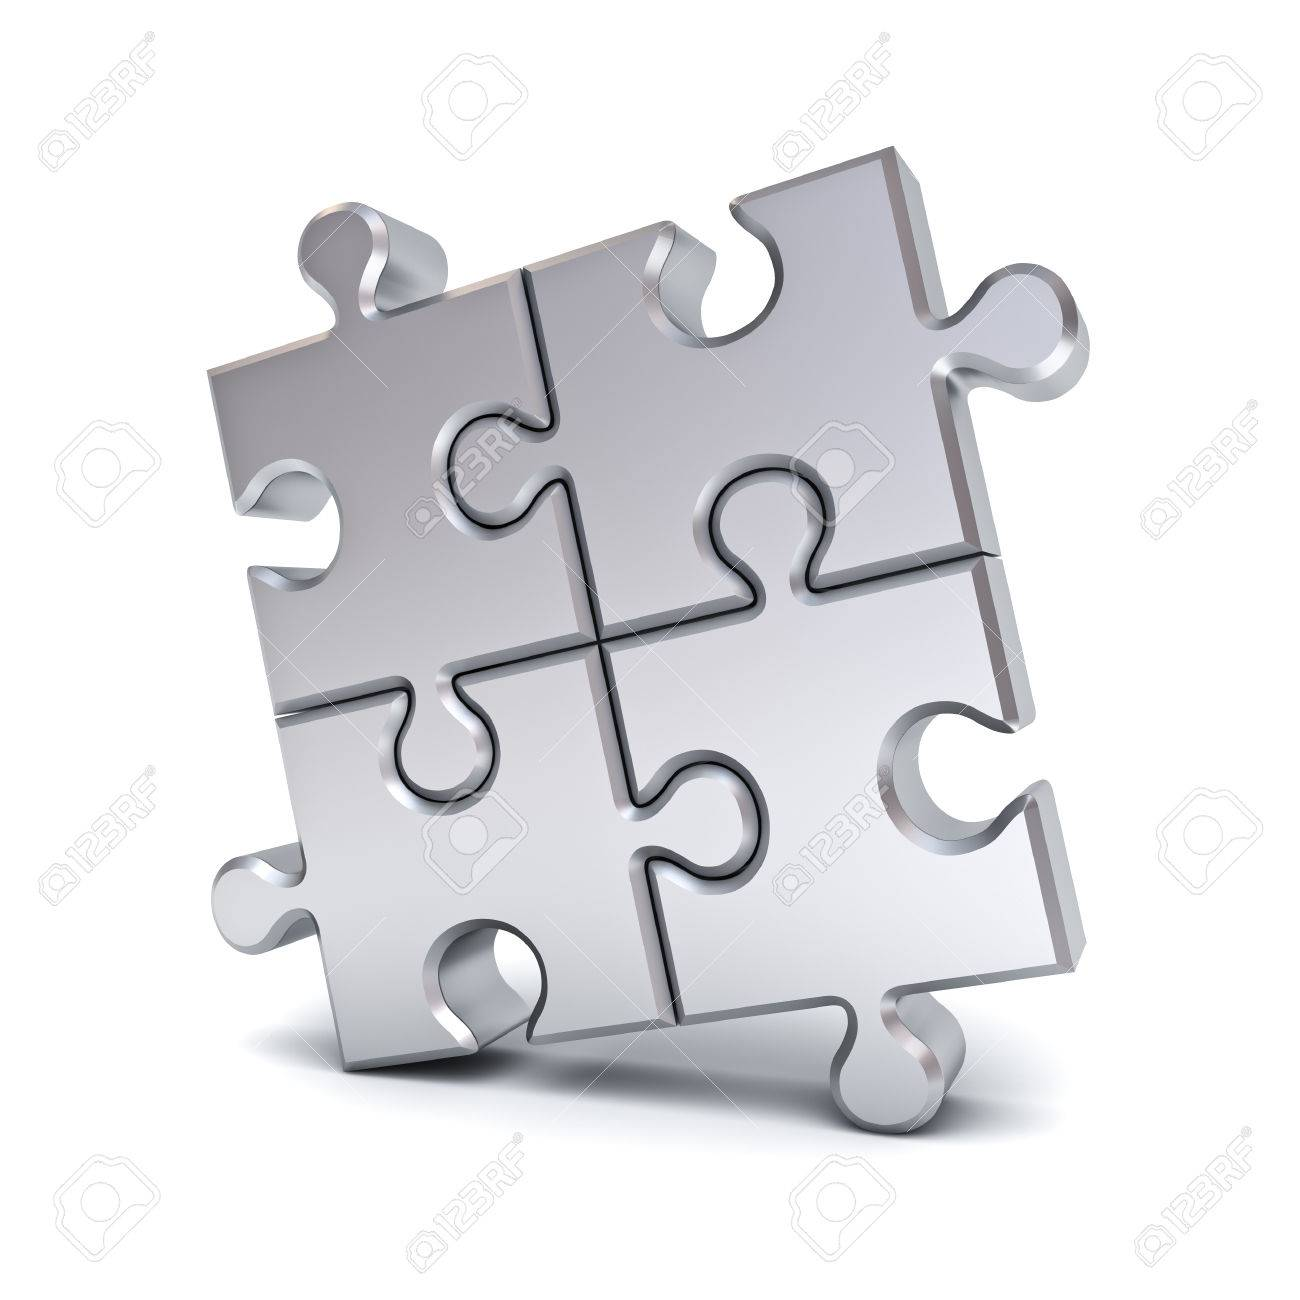 Metallic Chrome Jigsaw Puzzle Pieces Isolated On White Background With Shadow 3D Rendering Stock